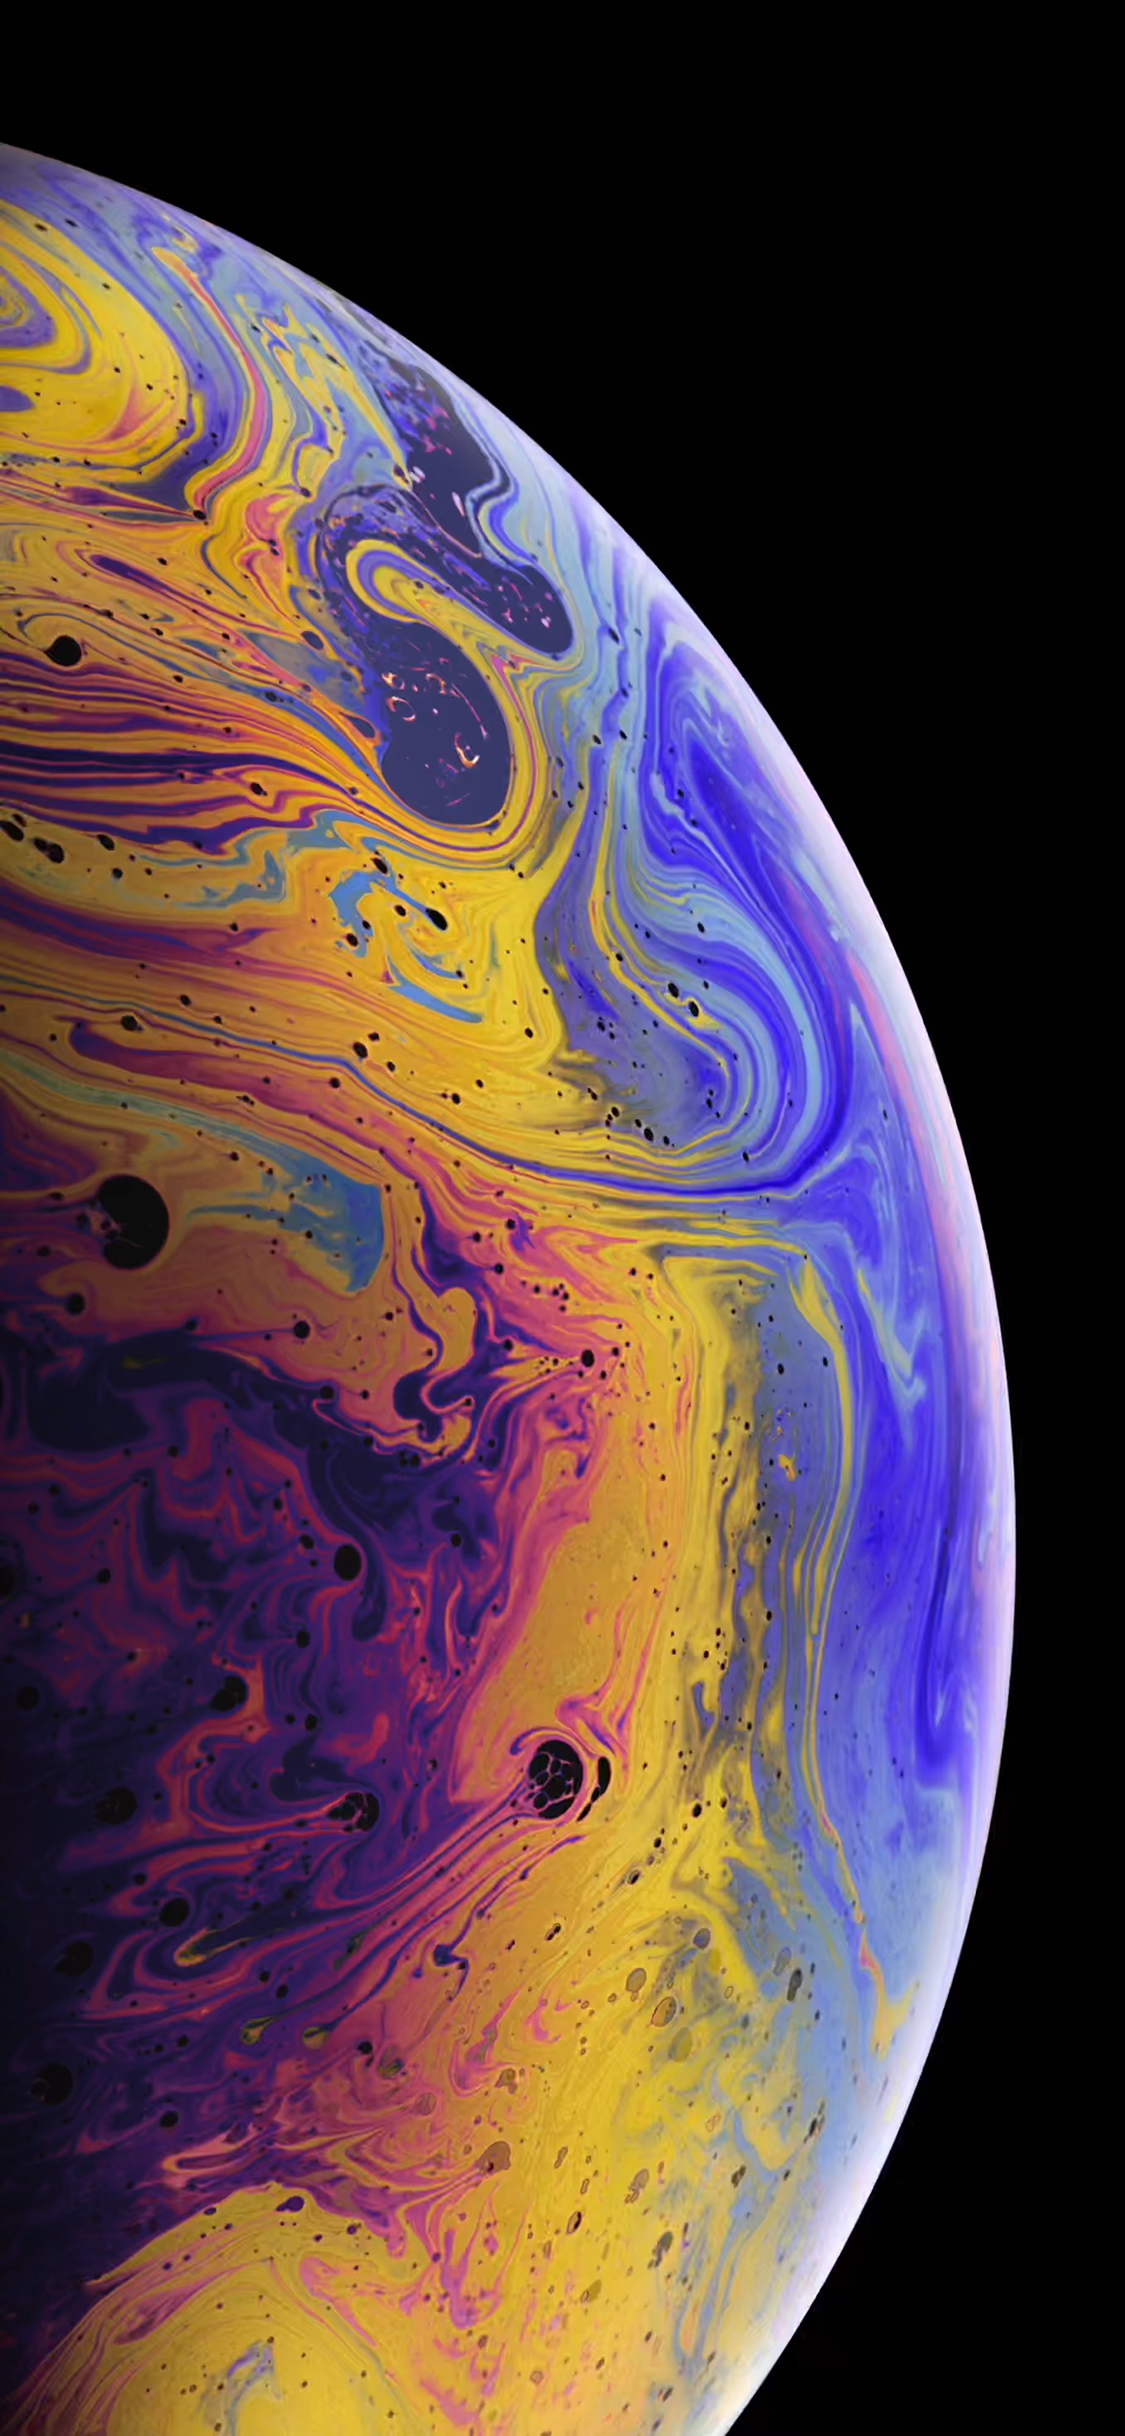 Iphonex Ios11 Ios12 Lockscreen Homescreen Backgrounds Apple Iphone Ipad Ios Wallpaper In 2020 Apple Wallpaper Iphone 4k Wallpaper Iphone Apple Wallpaper